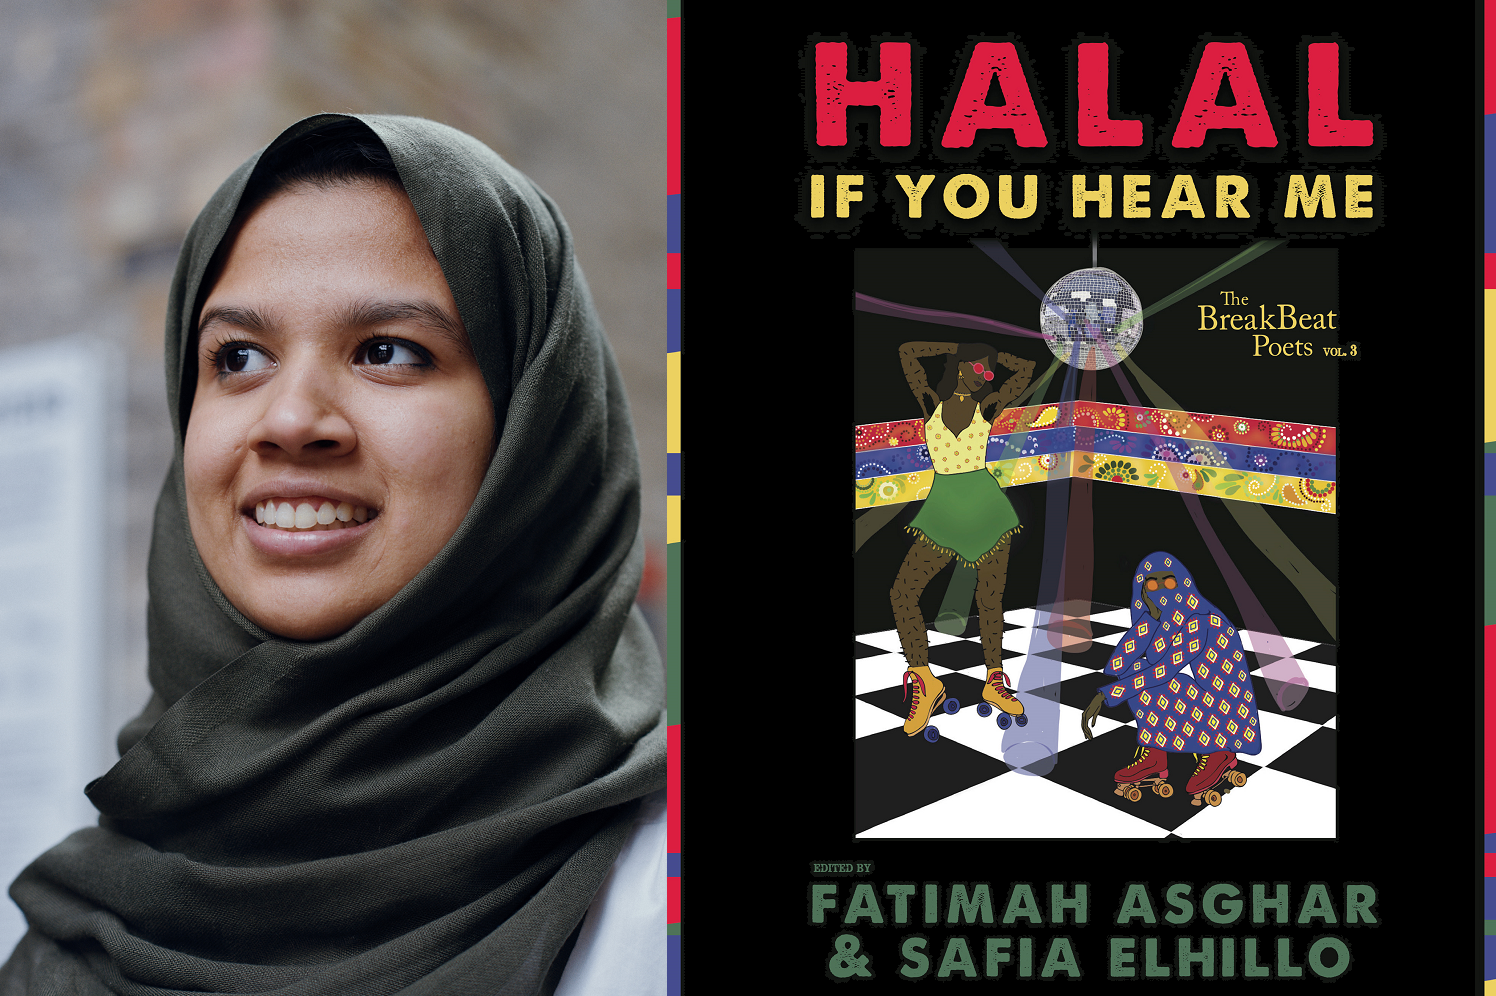 Two photos stitched together: Fathima Zahra on the left, smiling in a hijab, and on the right the cover of 'Halal if you hear me', an anthology